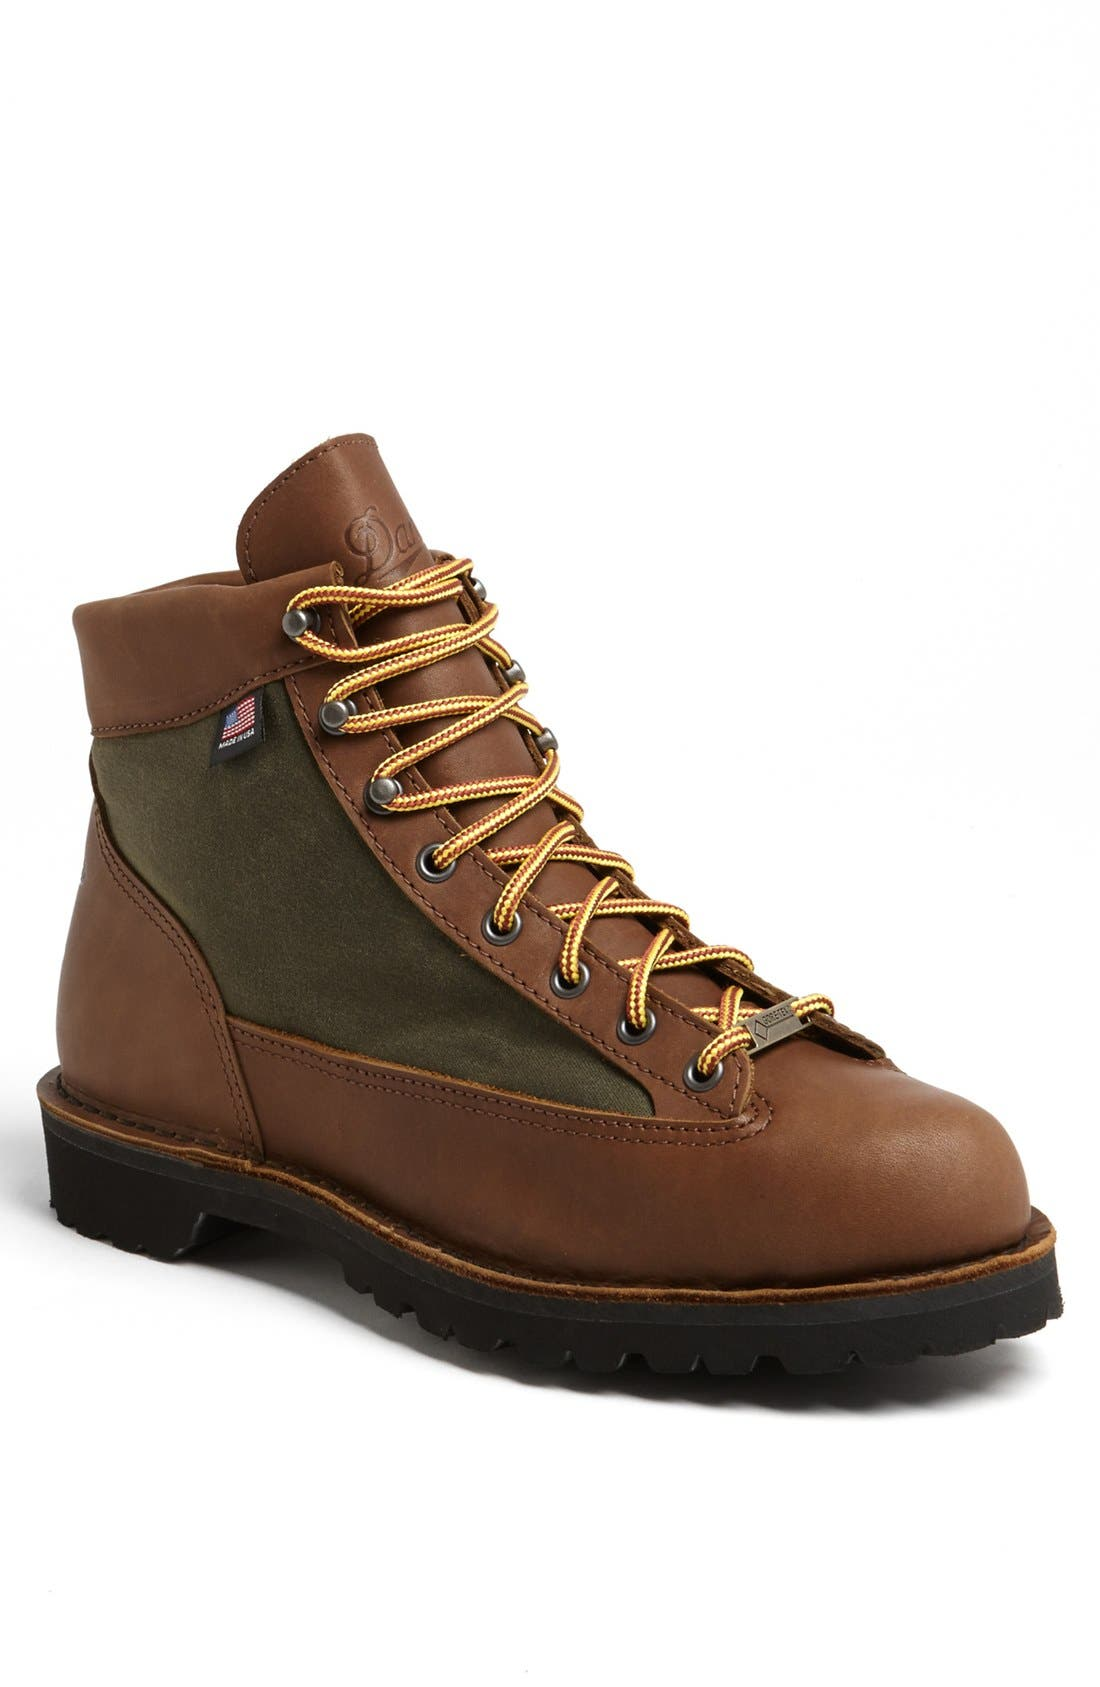 'Light Timber' Round Toe Boot,                             Main thumbnail 1, color,                             200